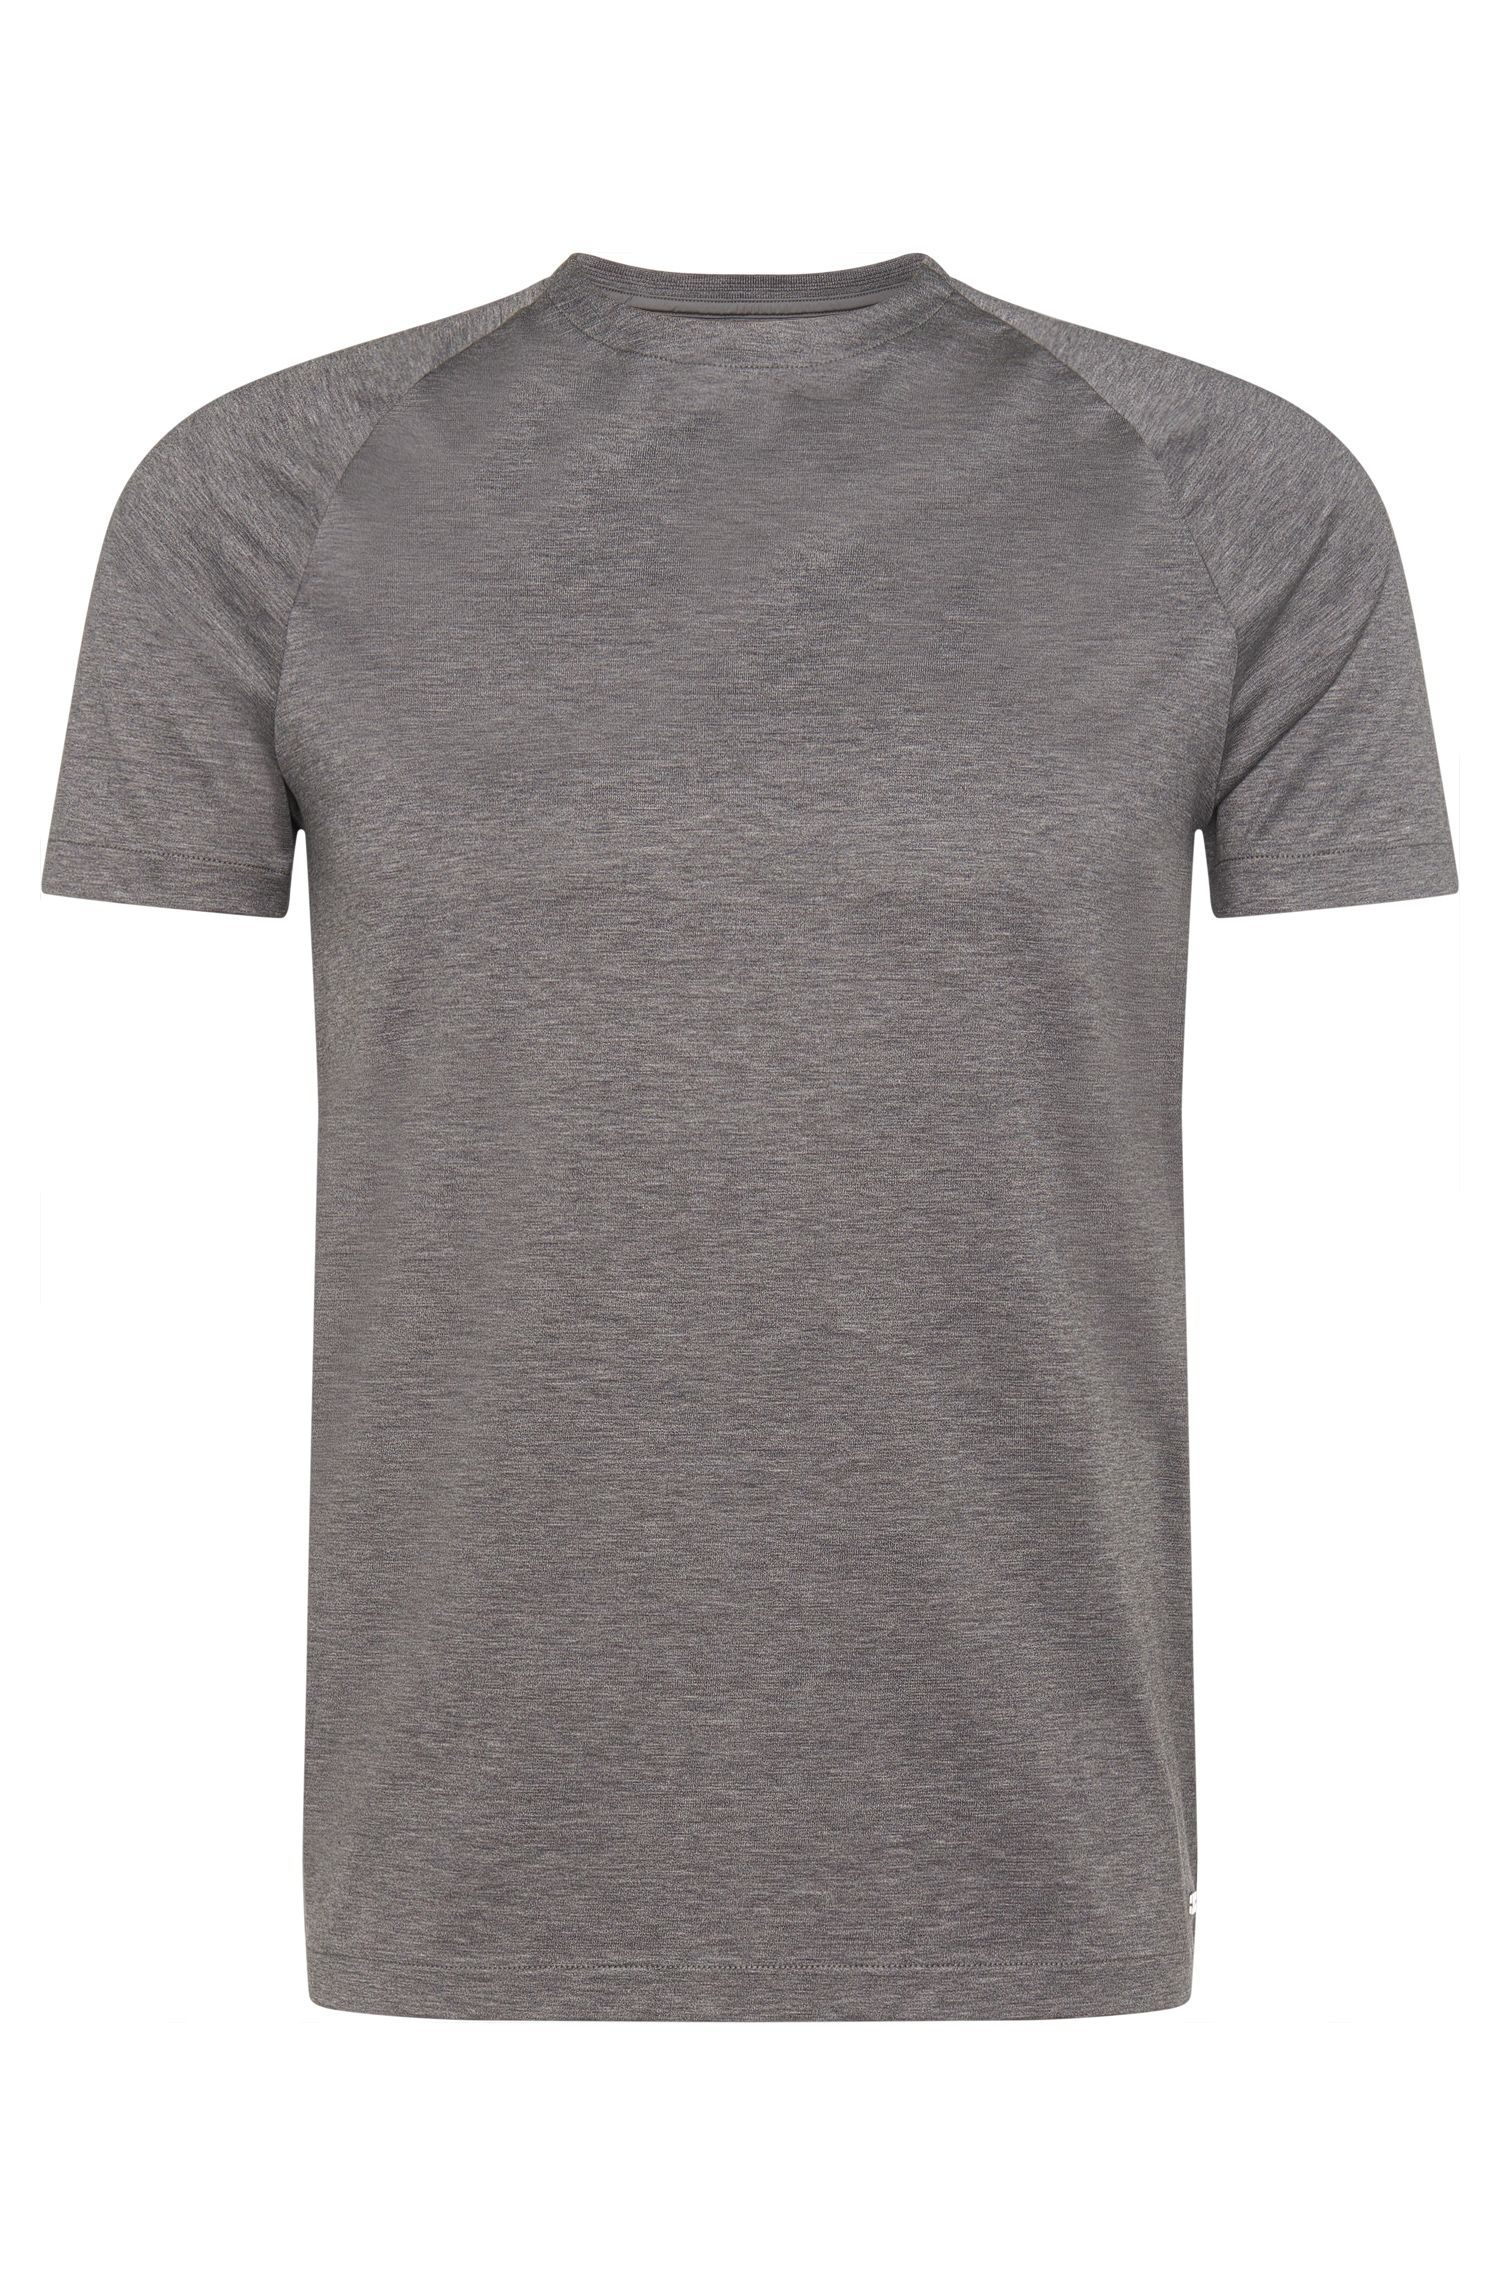 Slim-fit t-shirt in mercerised stretch cotton: 'Tessler 22' from the Mercedes-Benz Collection